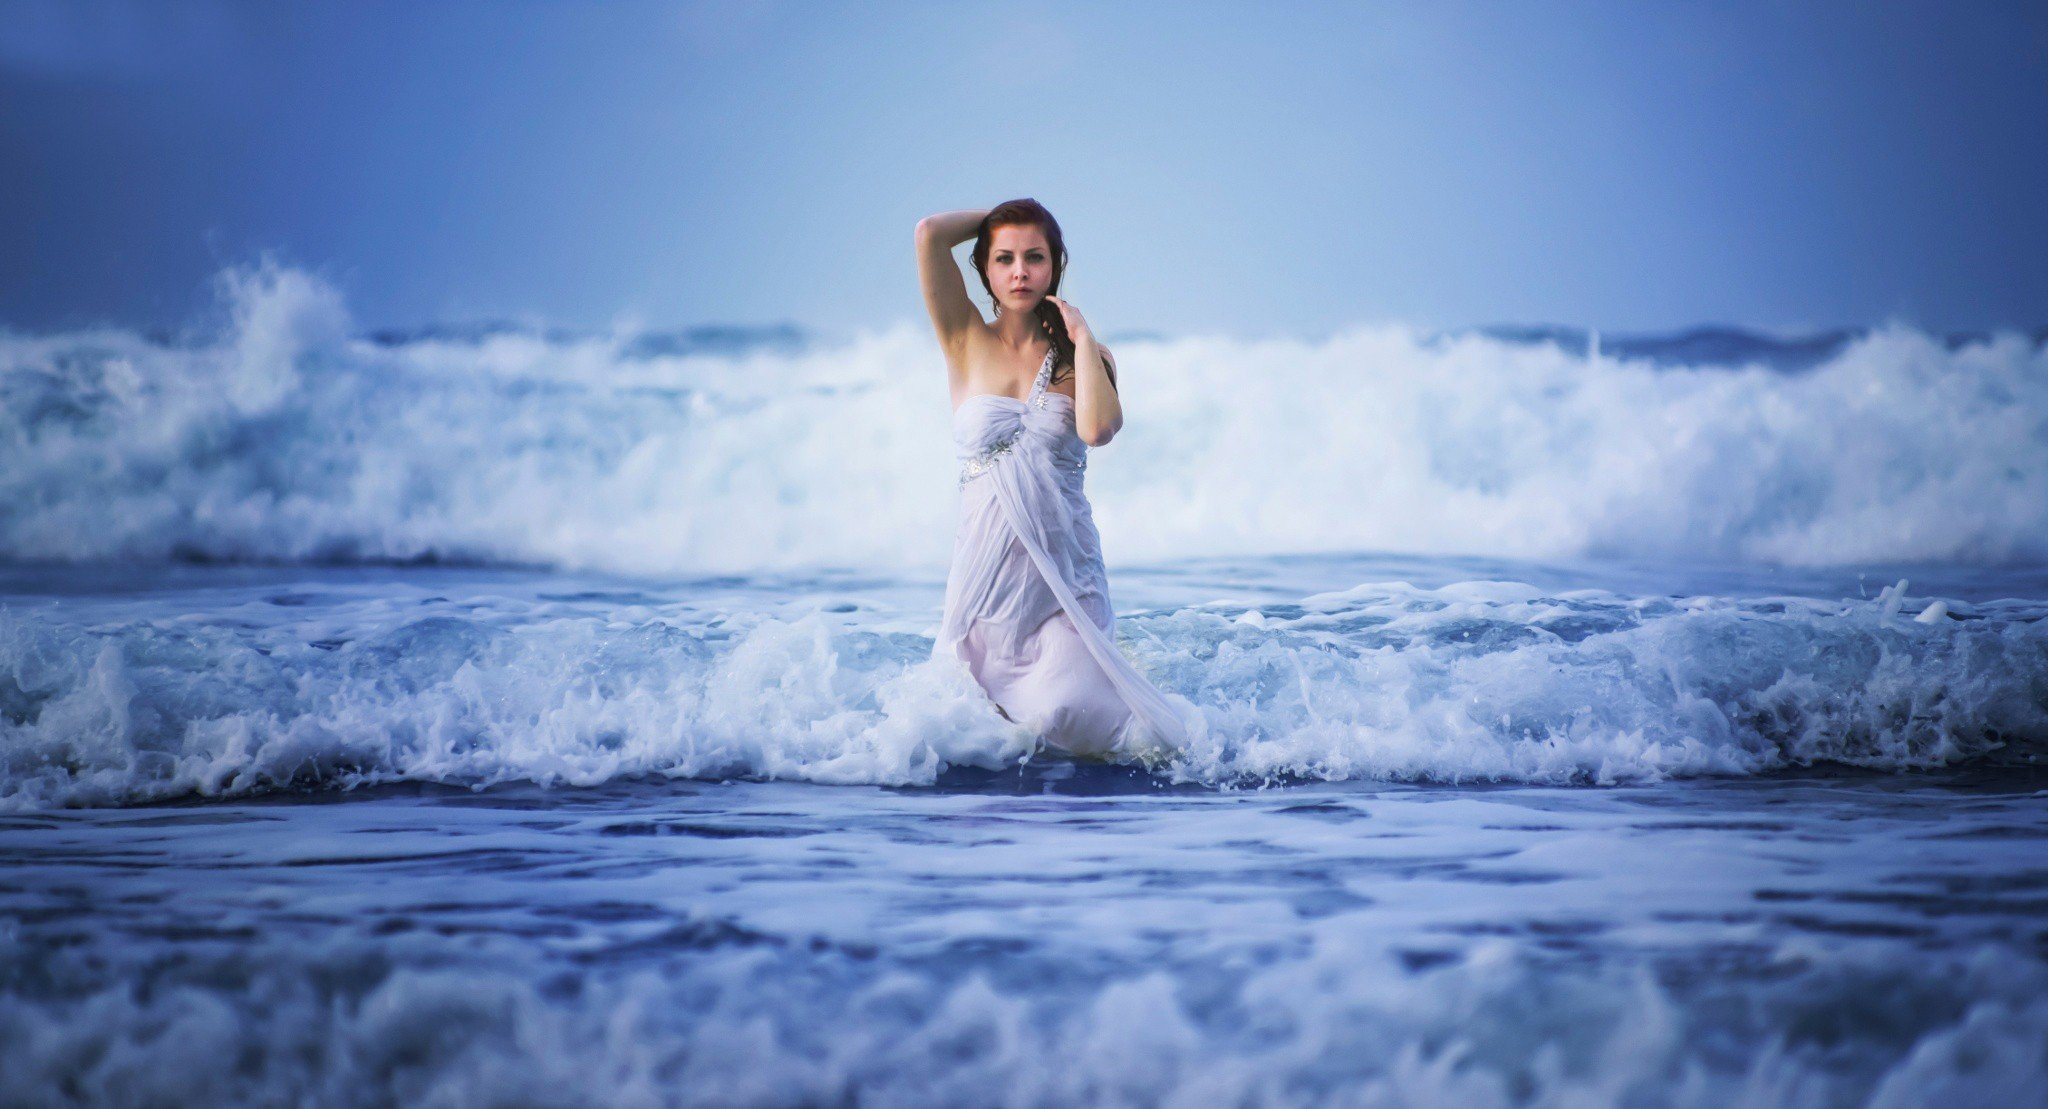 women, sea, waves, wet, dress, women outdoors, nature, water hd